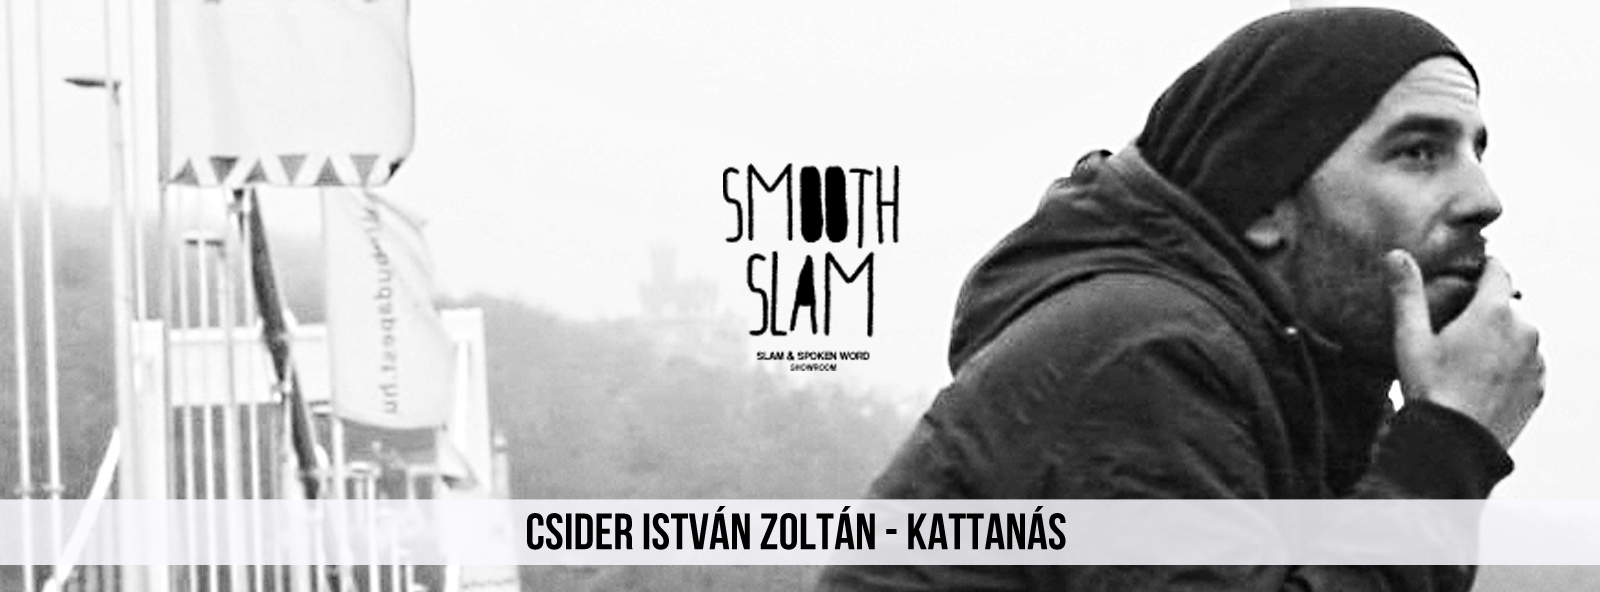 Kattanás Slam Video